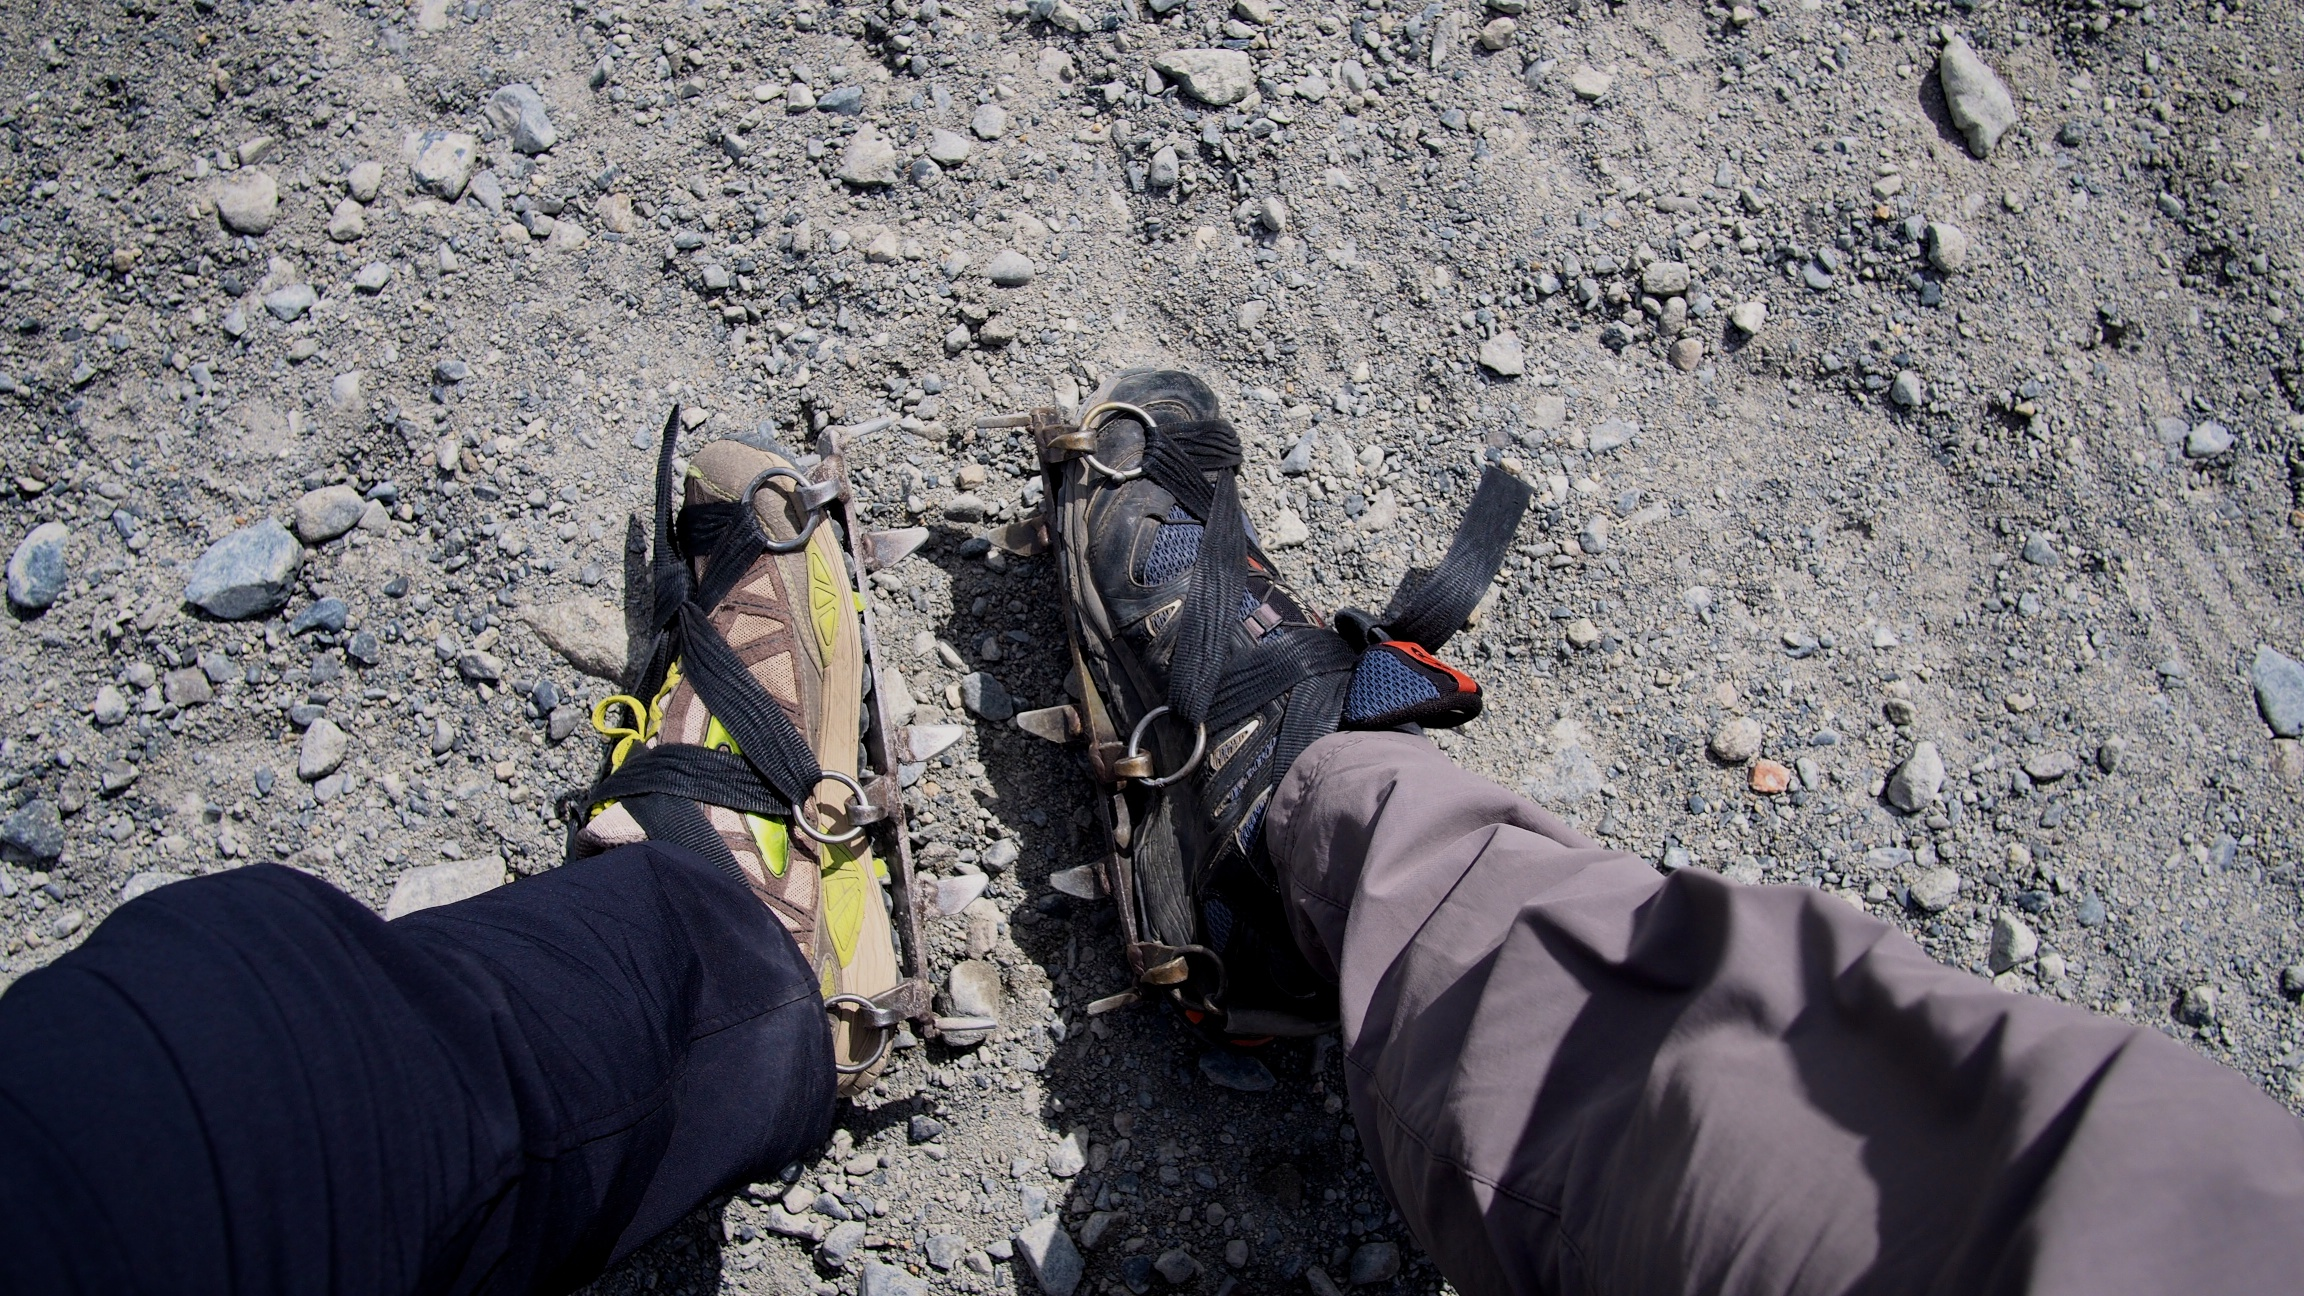 Staff put the crampons on for you to make sure they're on your feet properly